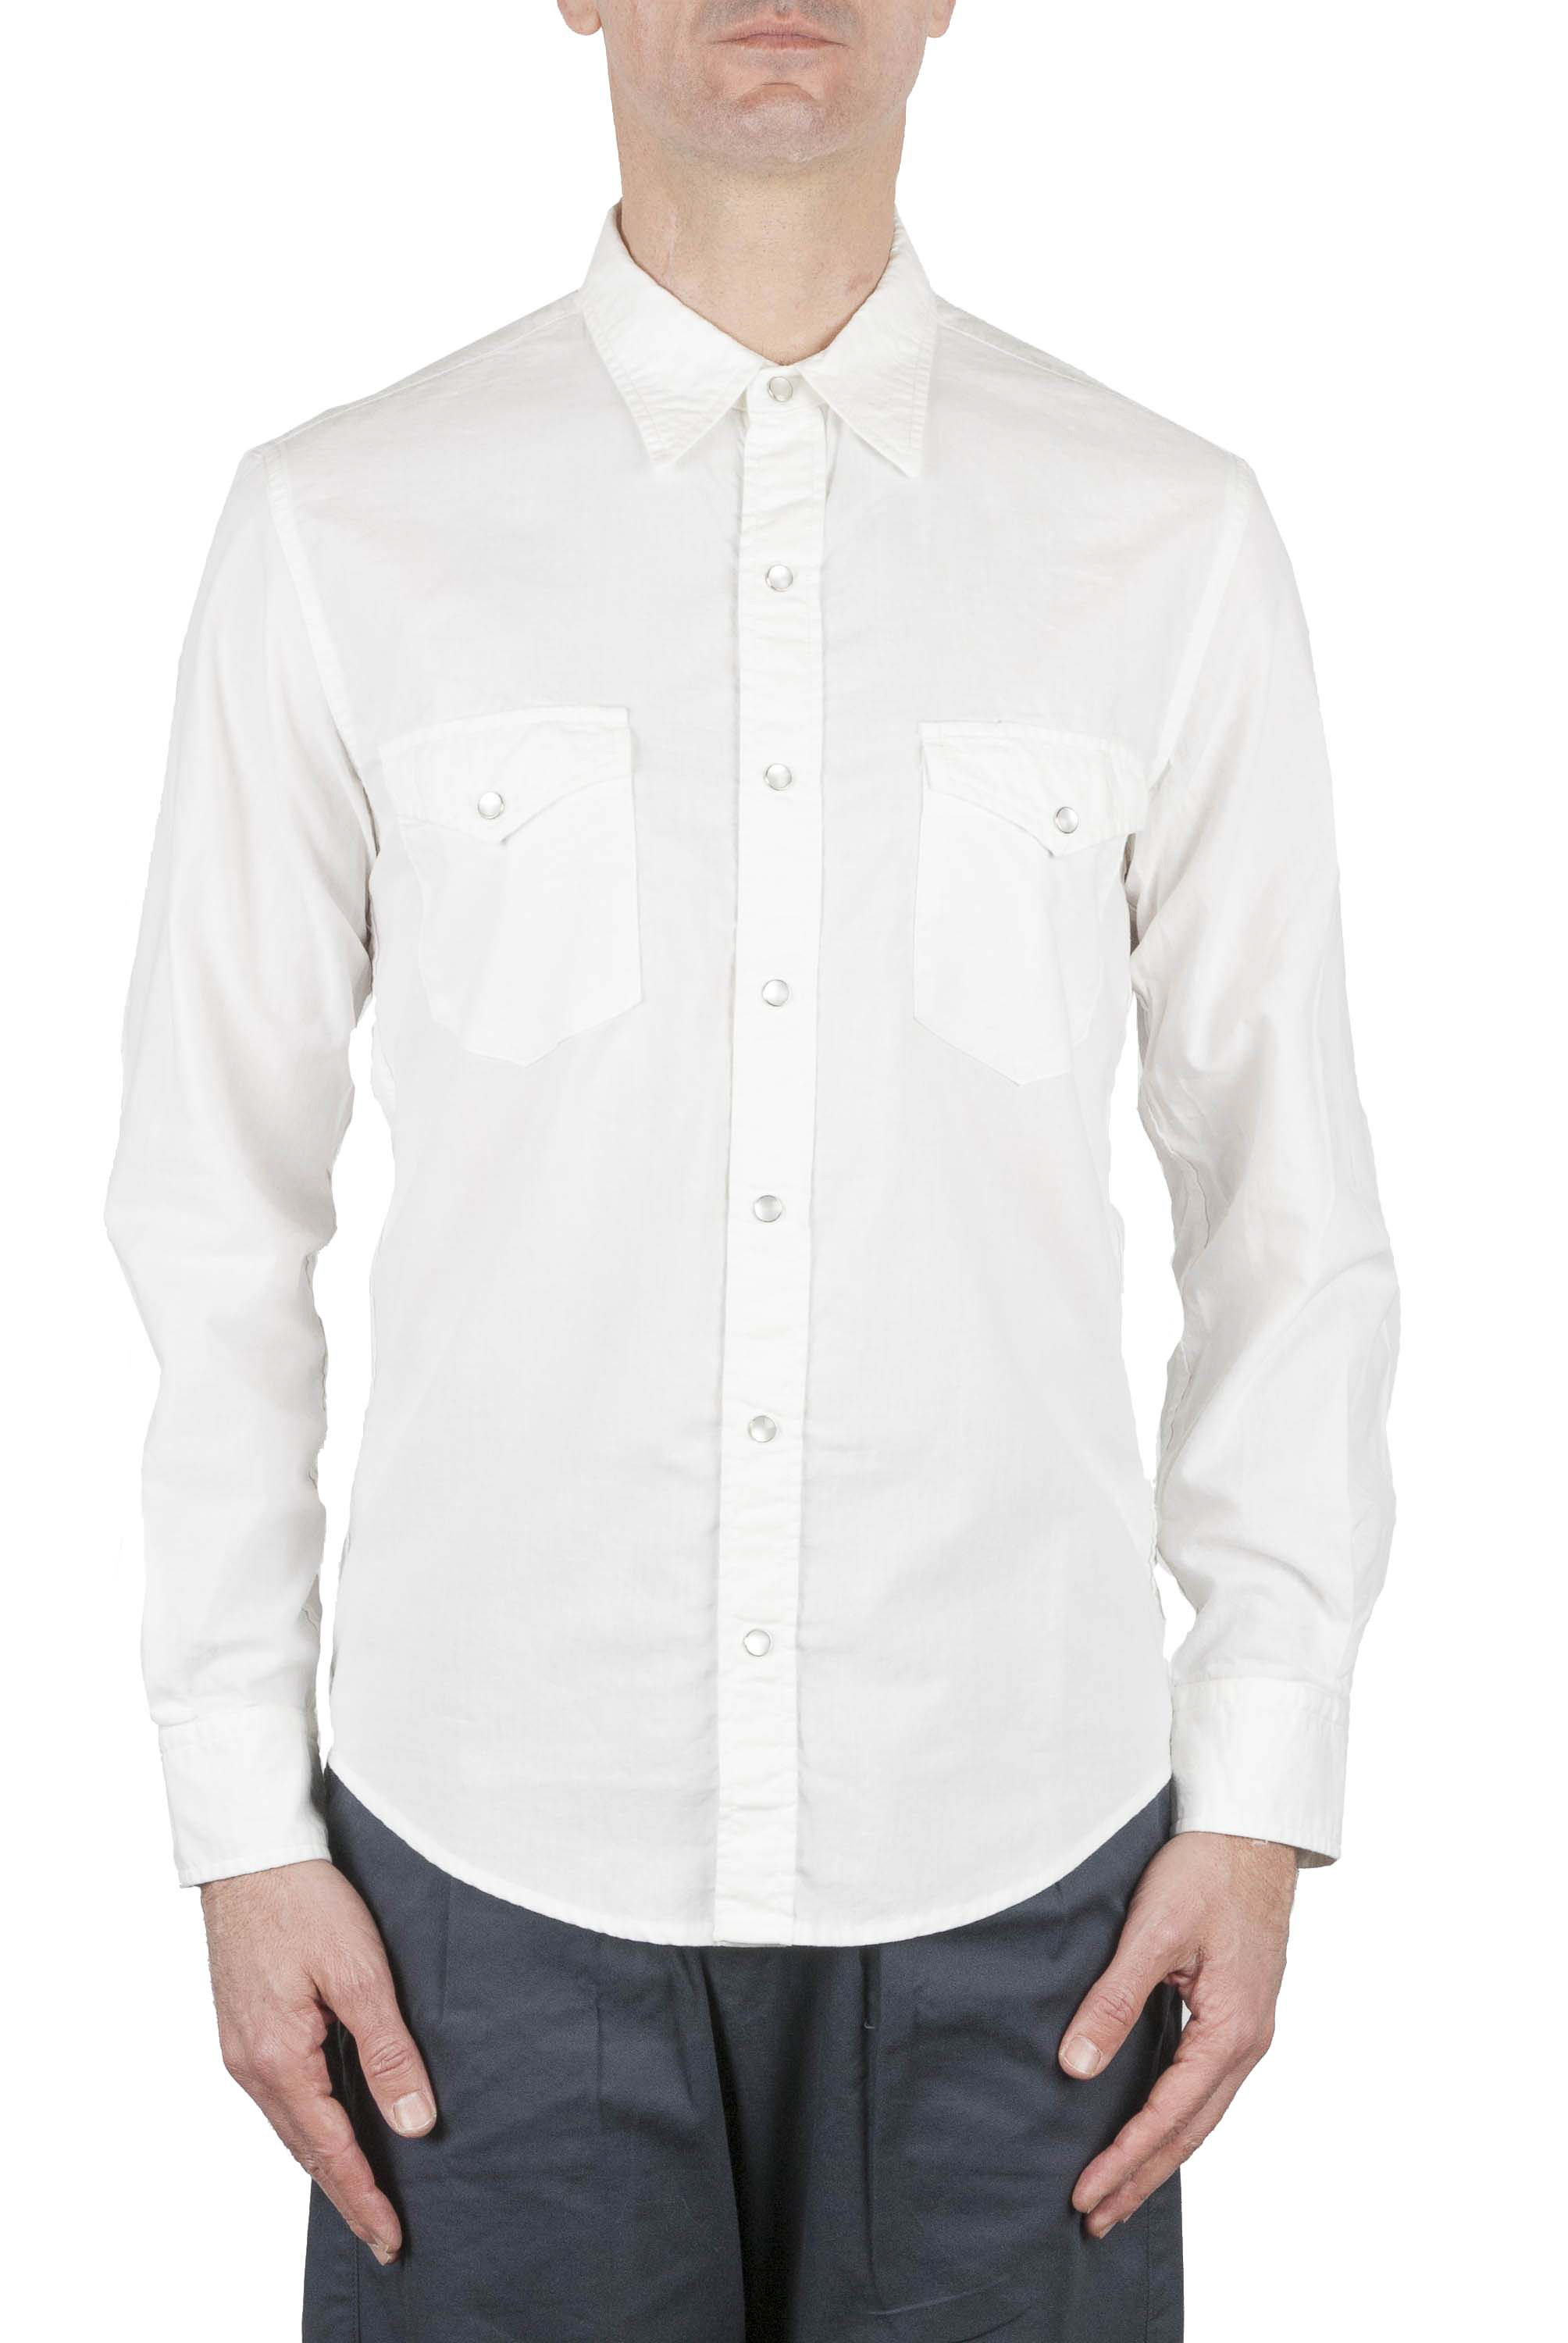 SBU 01612 White chambray cotton western shirt 01